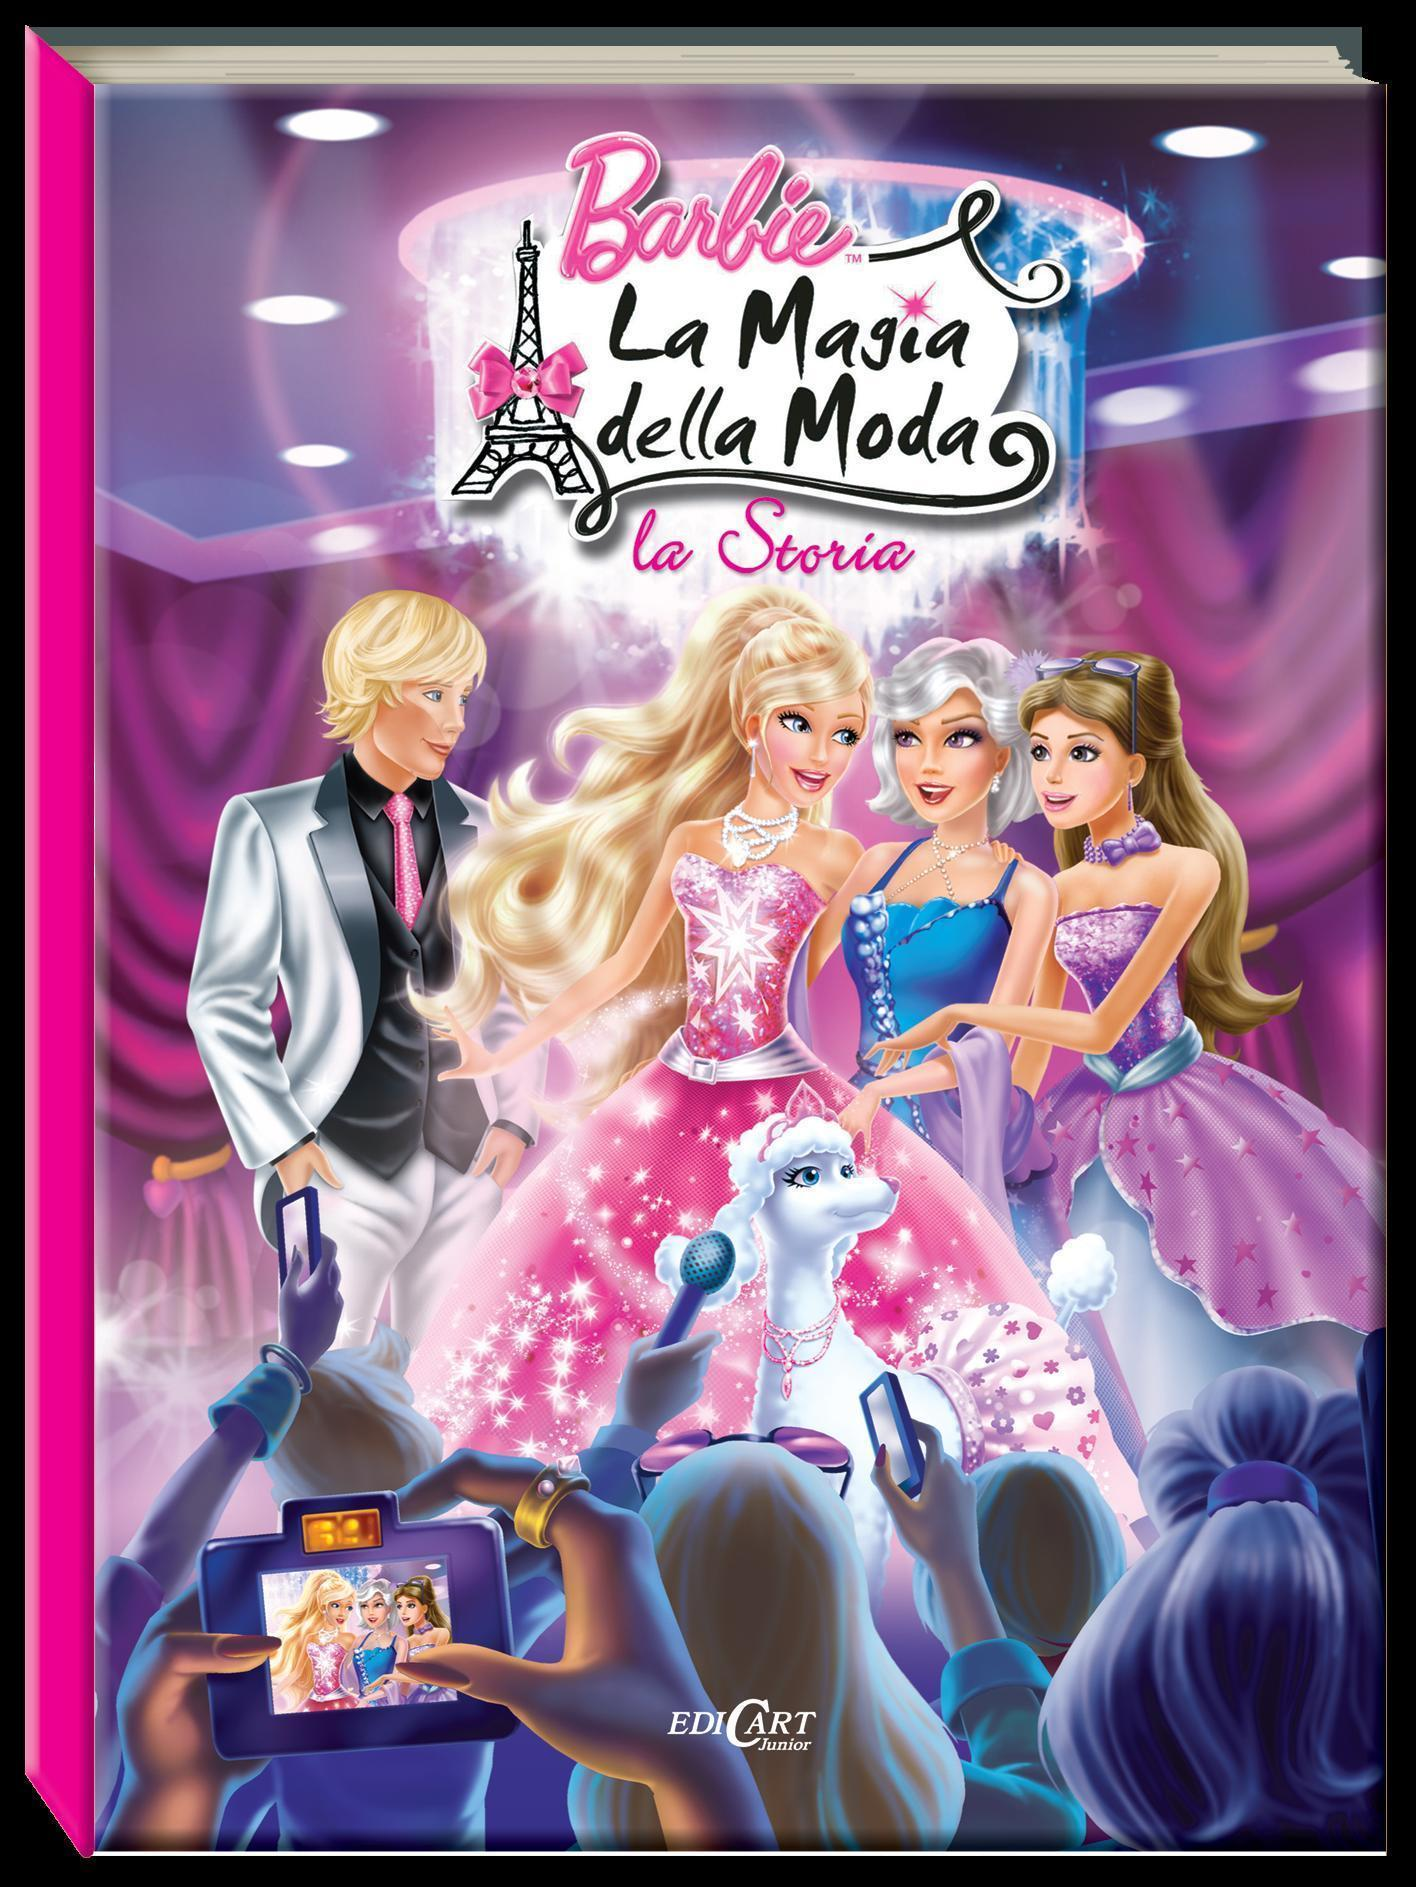 Fashion Fairytale Full Movie In English Barbie Fashion Fairytale